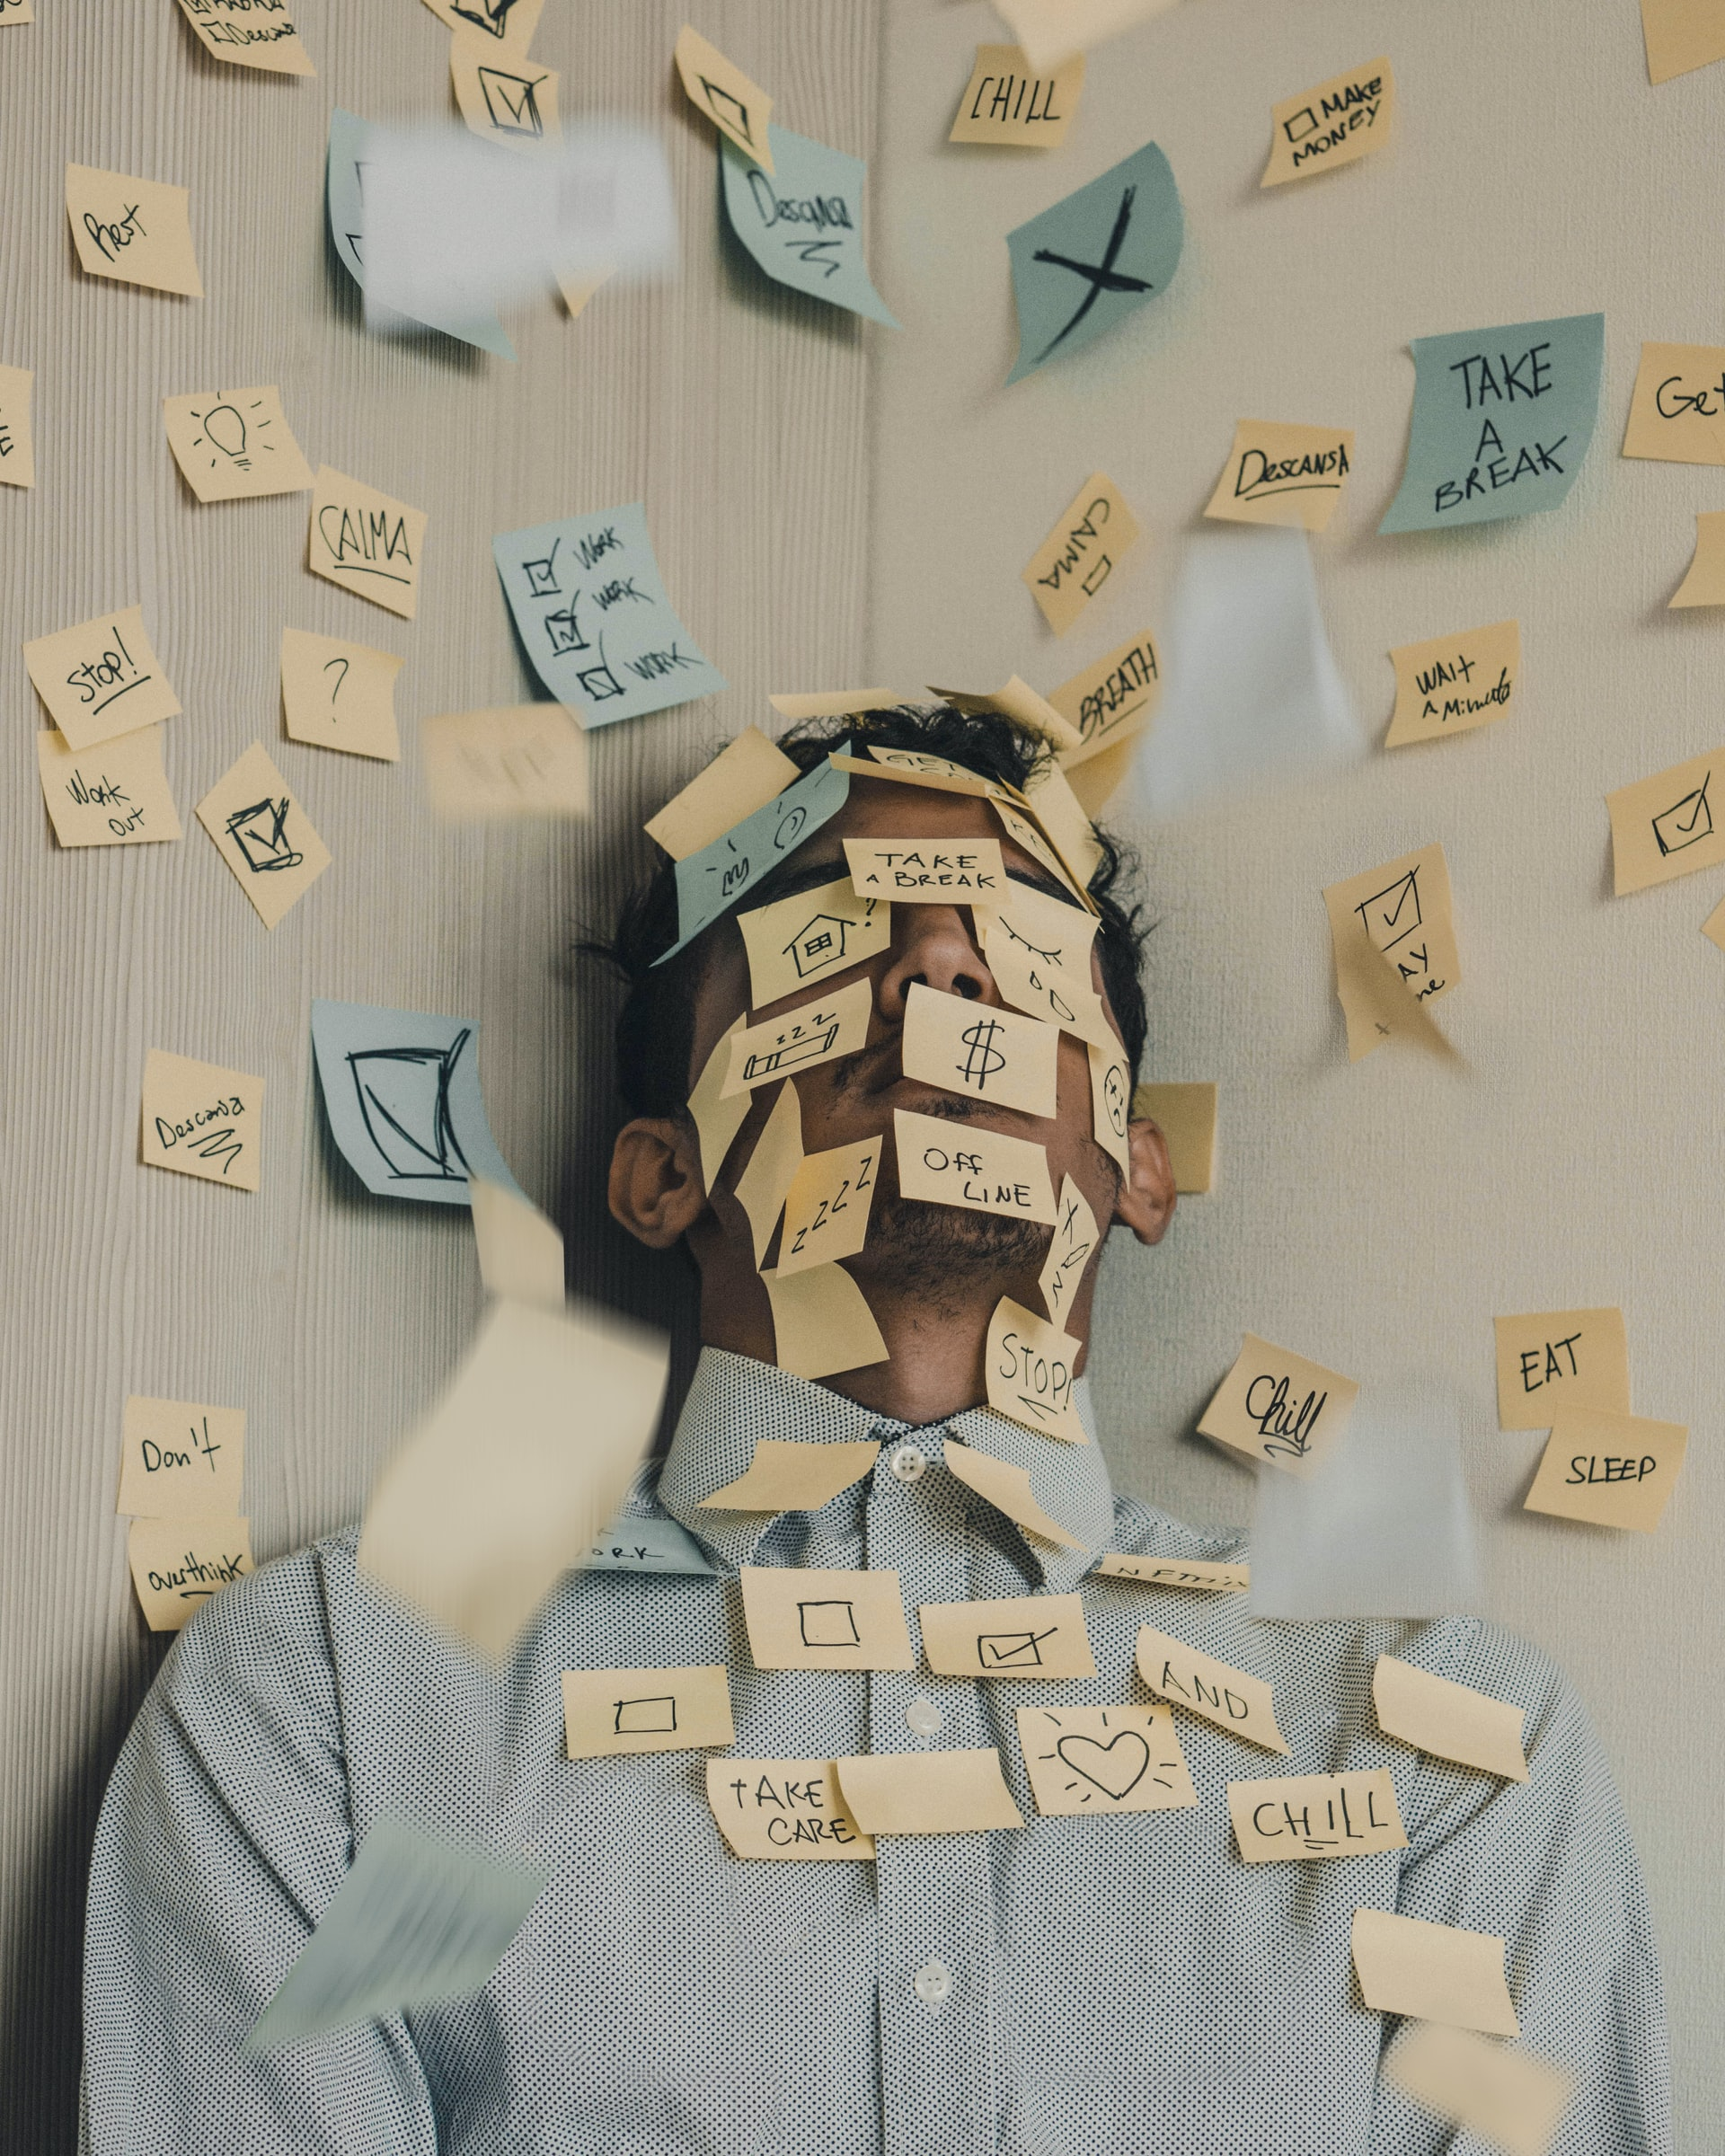 Man sitting in corner with eyes closed covered in post it notes